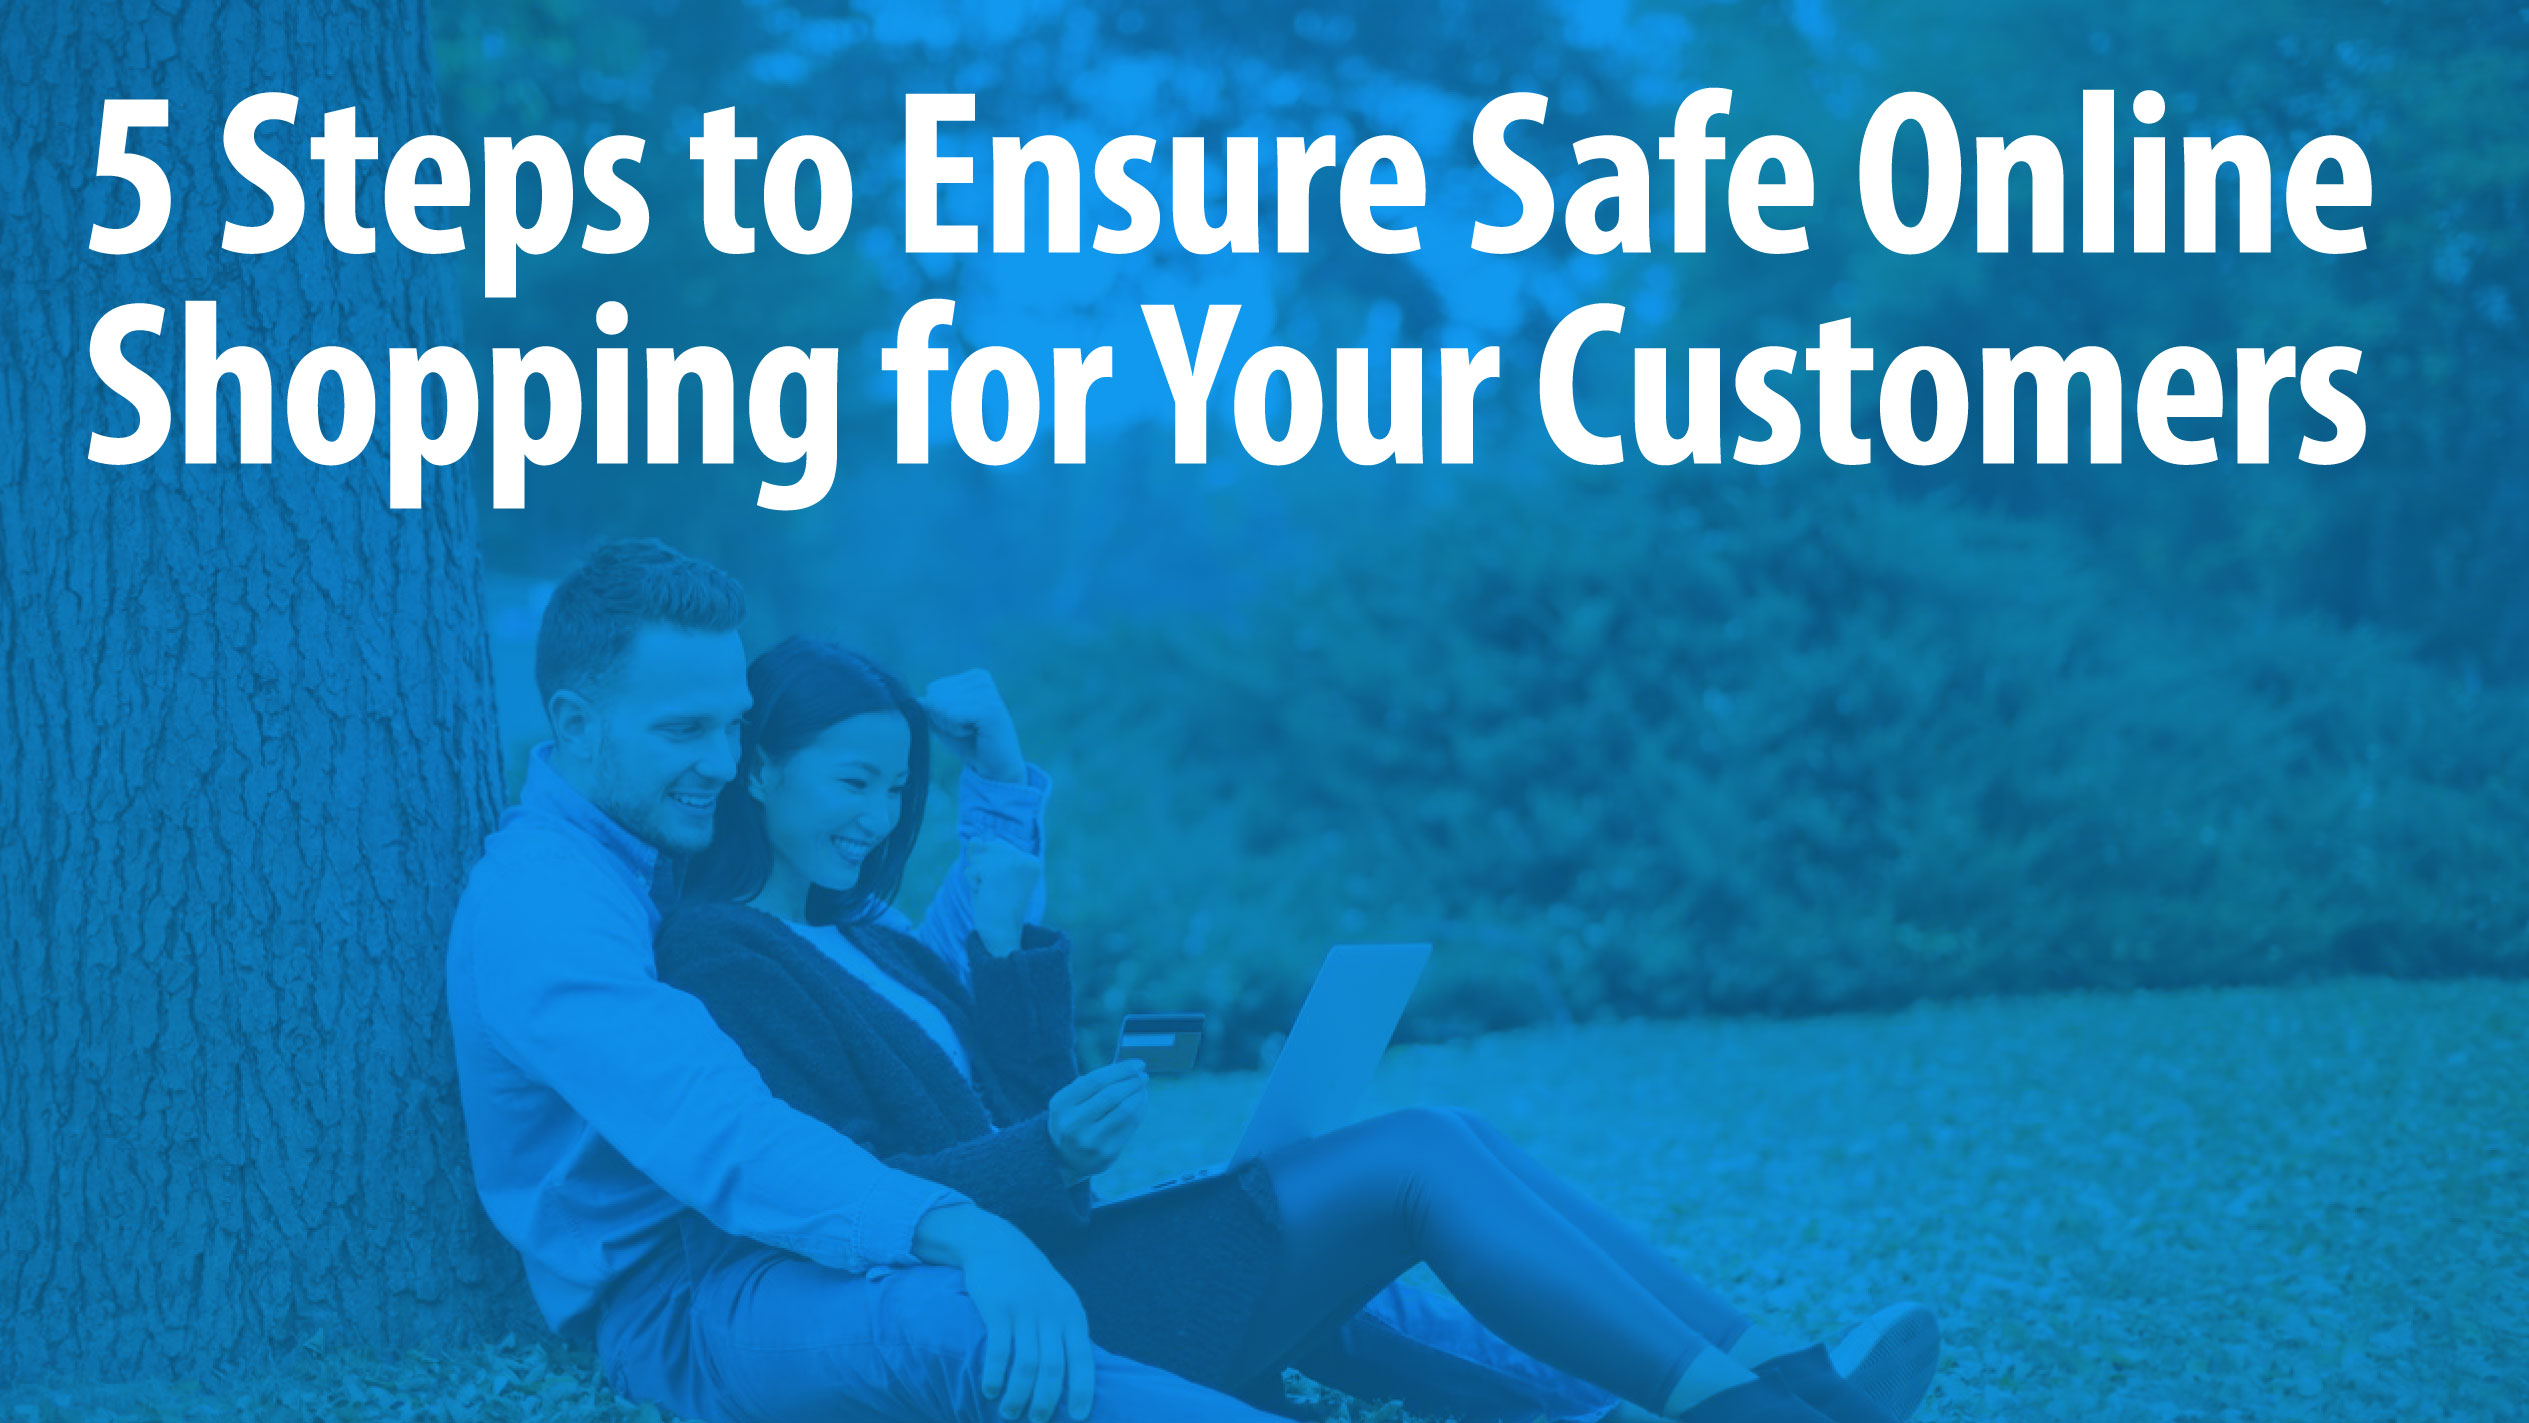 5 Steps to Ensure Safe Online Shopping for Your Customers